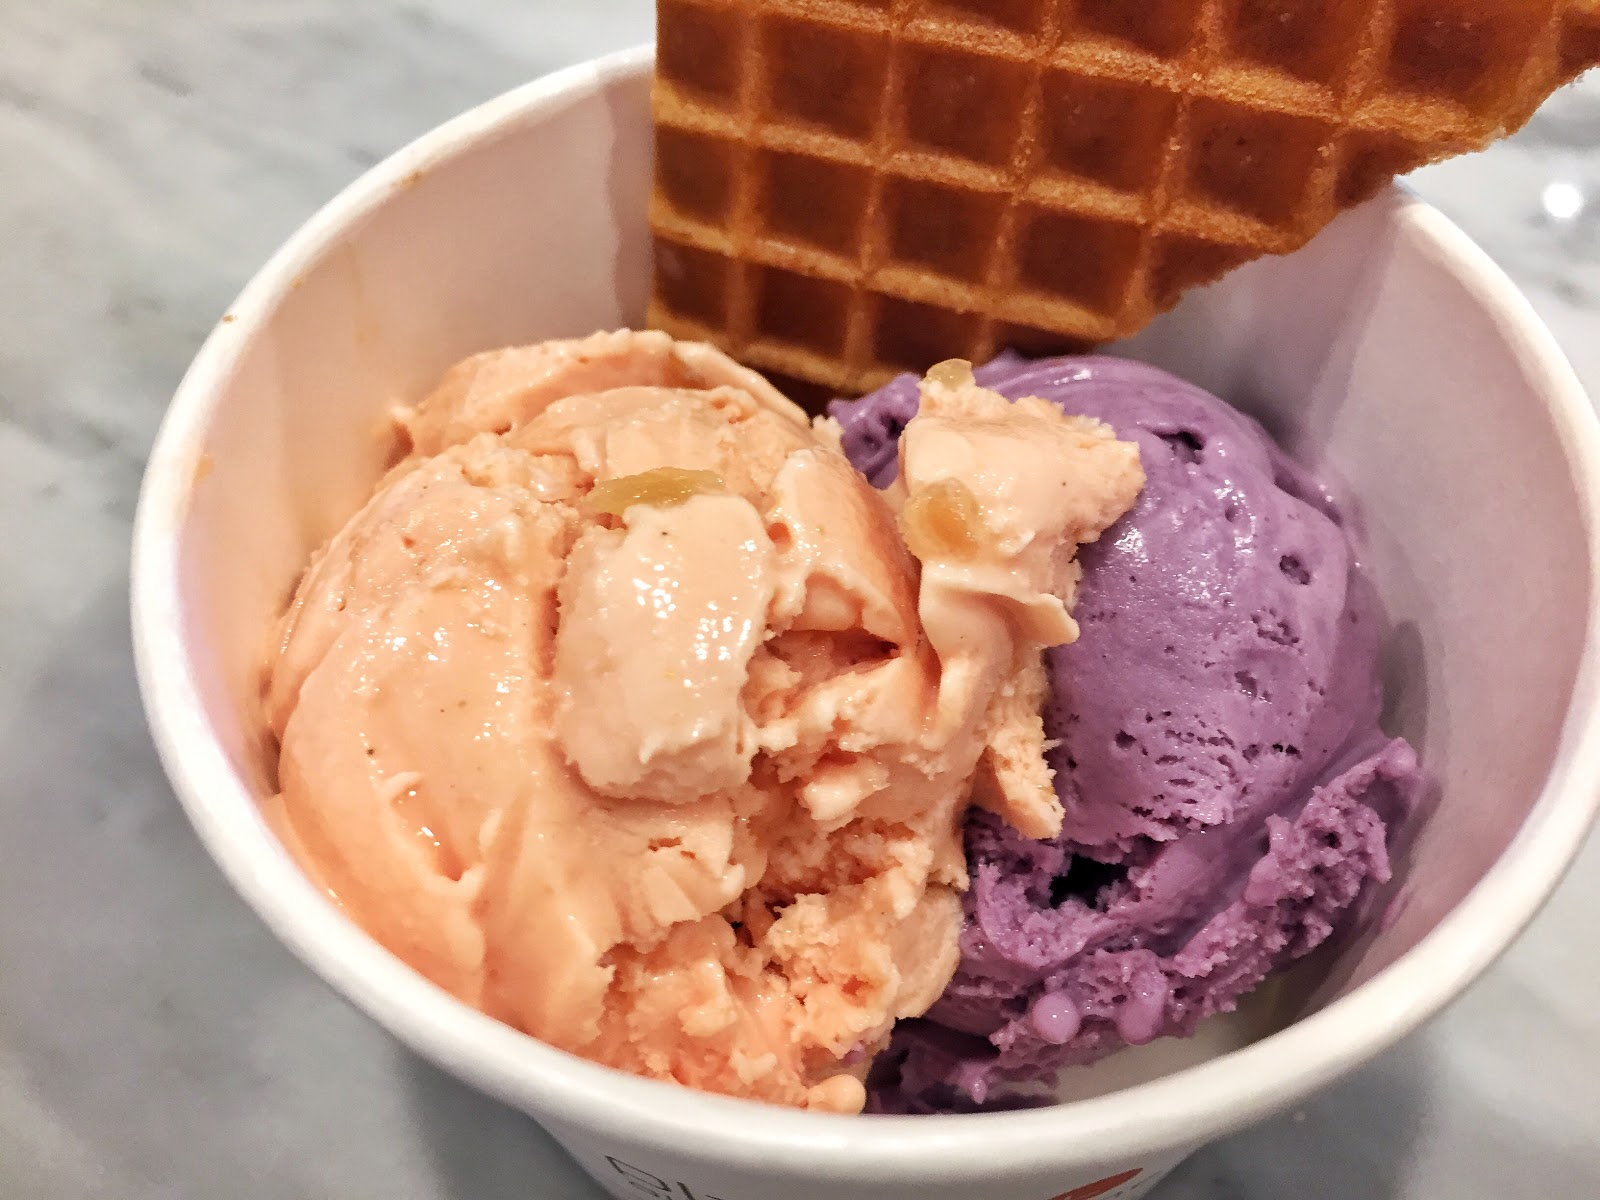 jeni's jeni charleston south carolina ice cream upper king street downtown candied ginger wildberry lavender